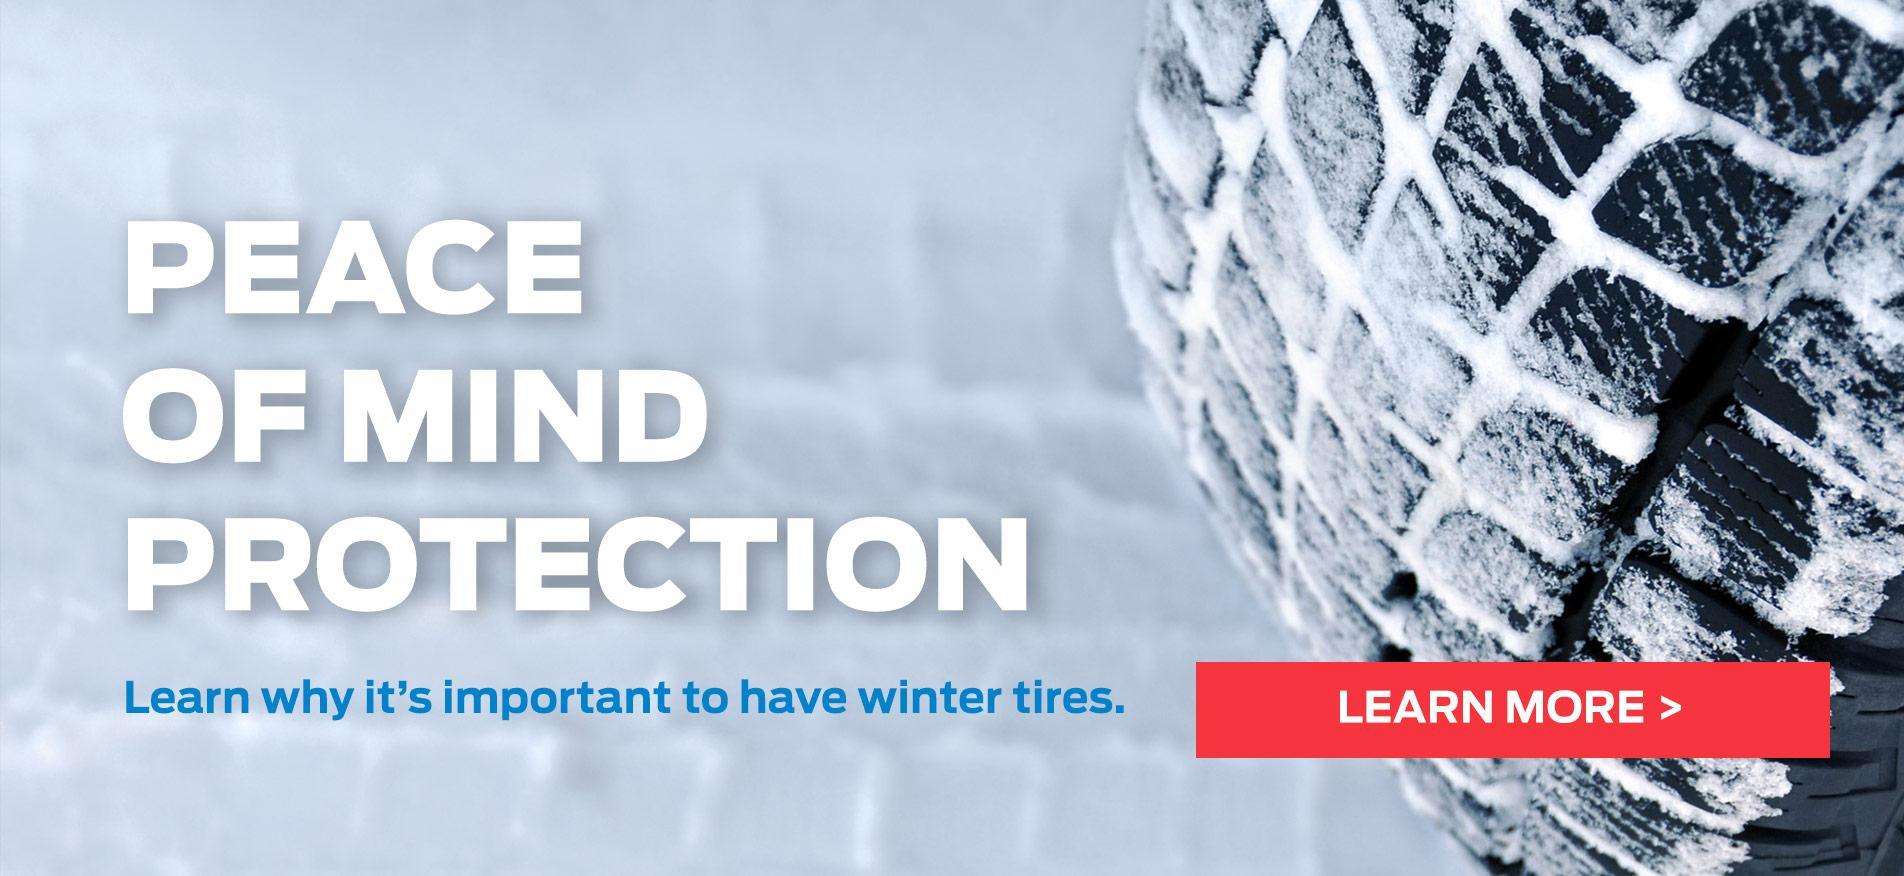 Cavalcade Ford - WINTER TIRES FAQ